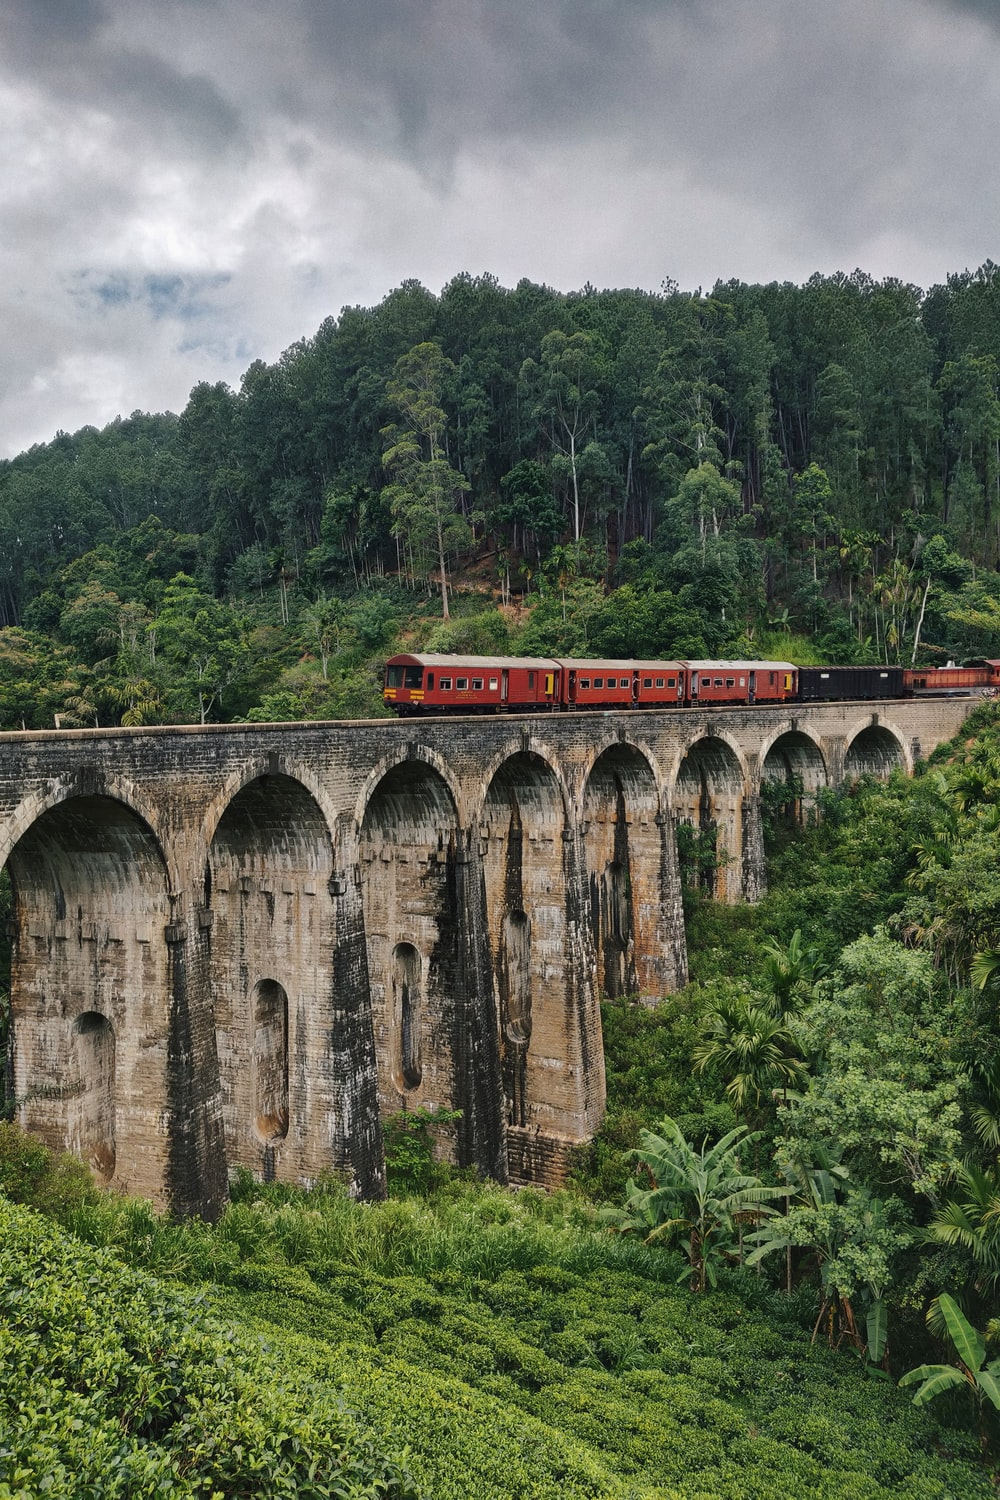 train on bridge in forest